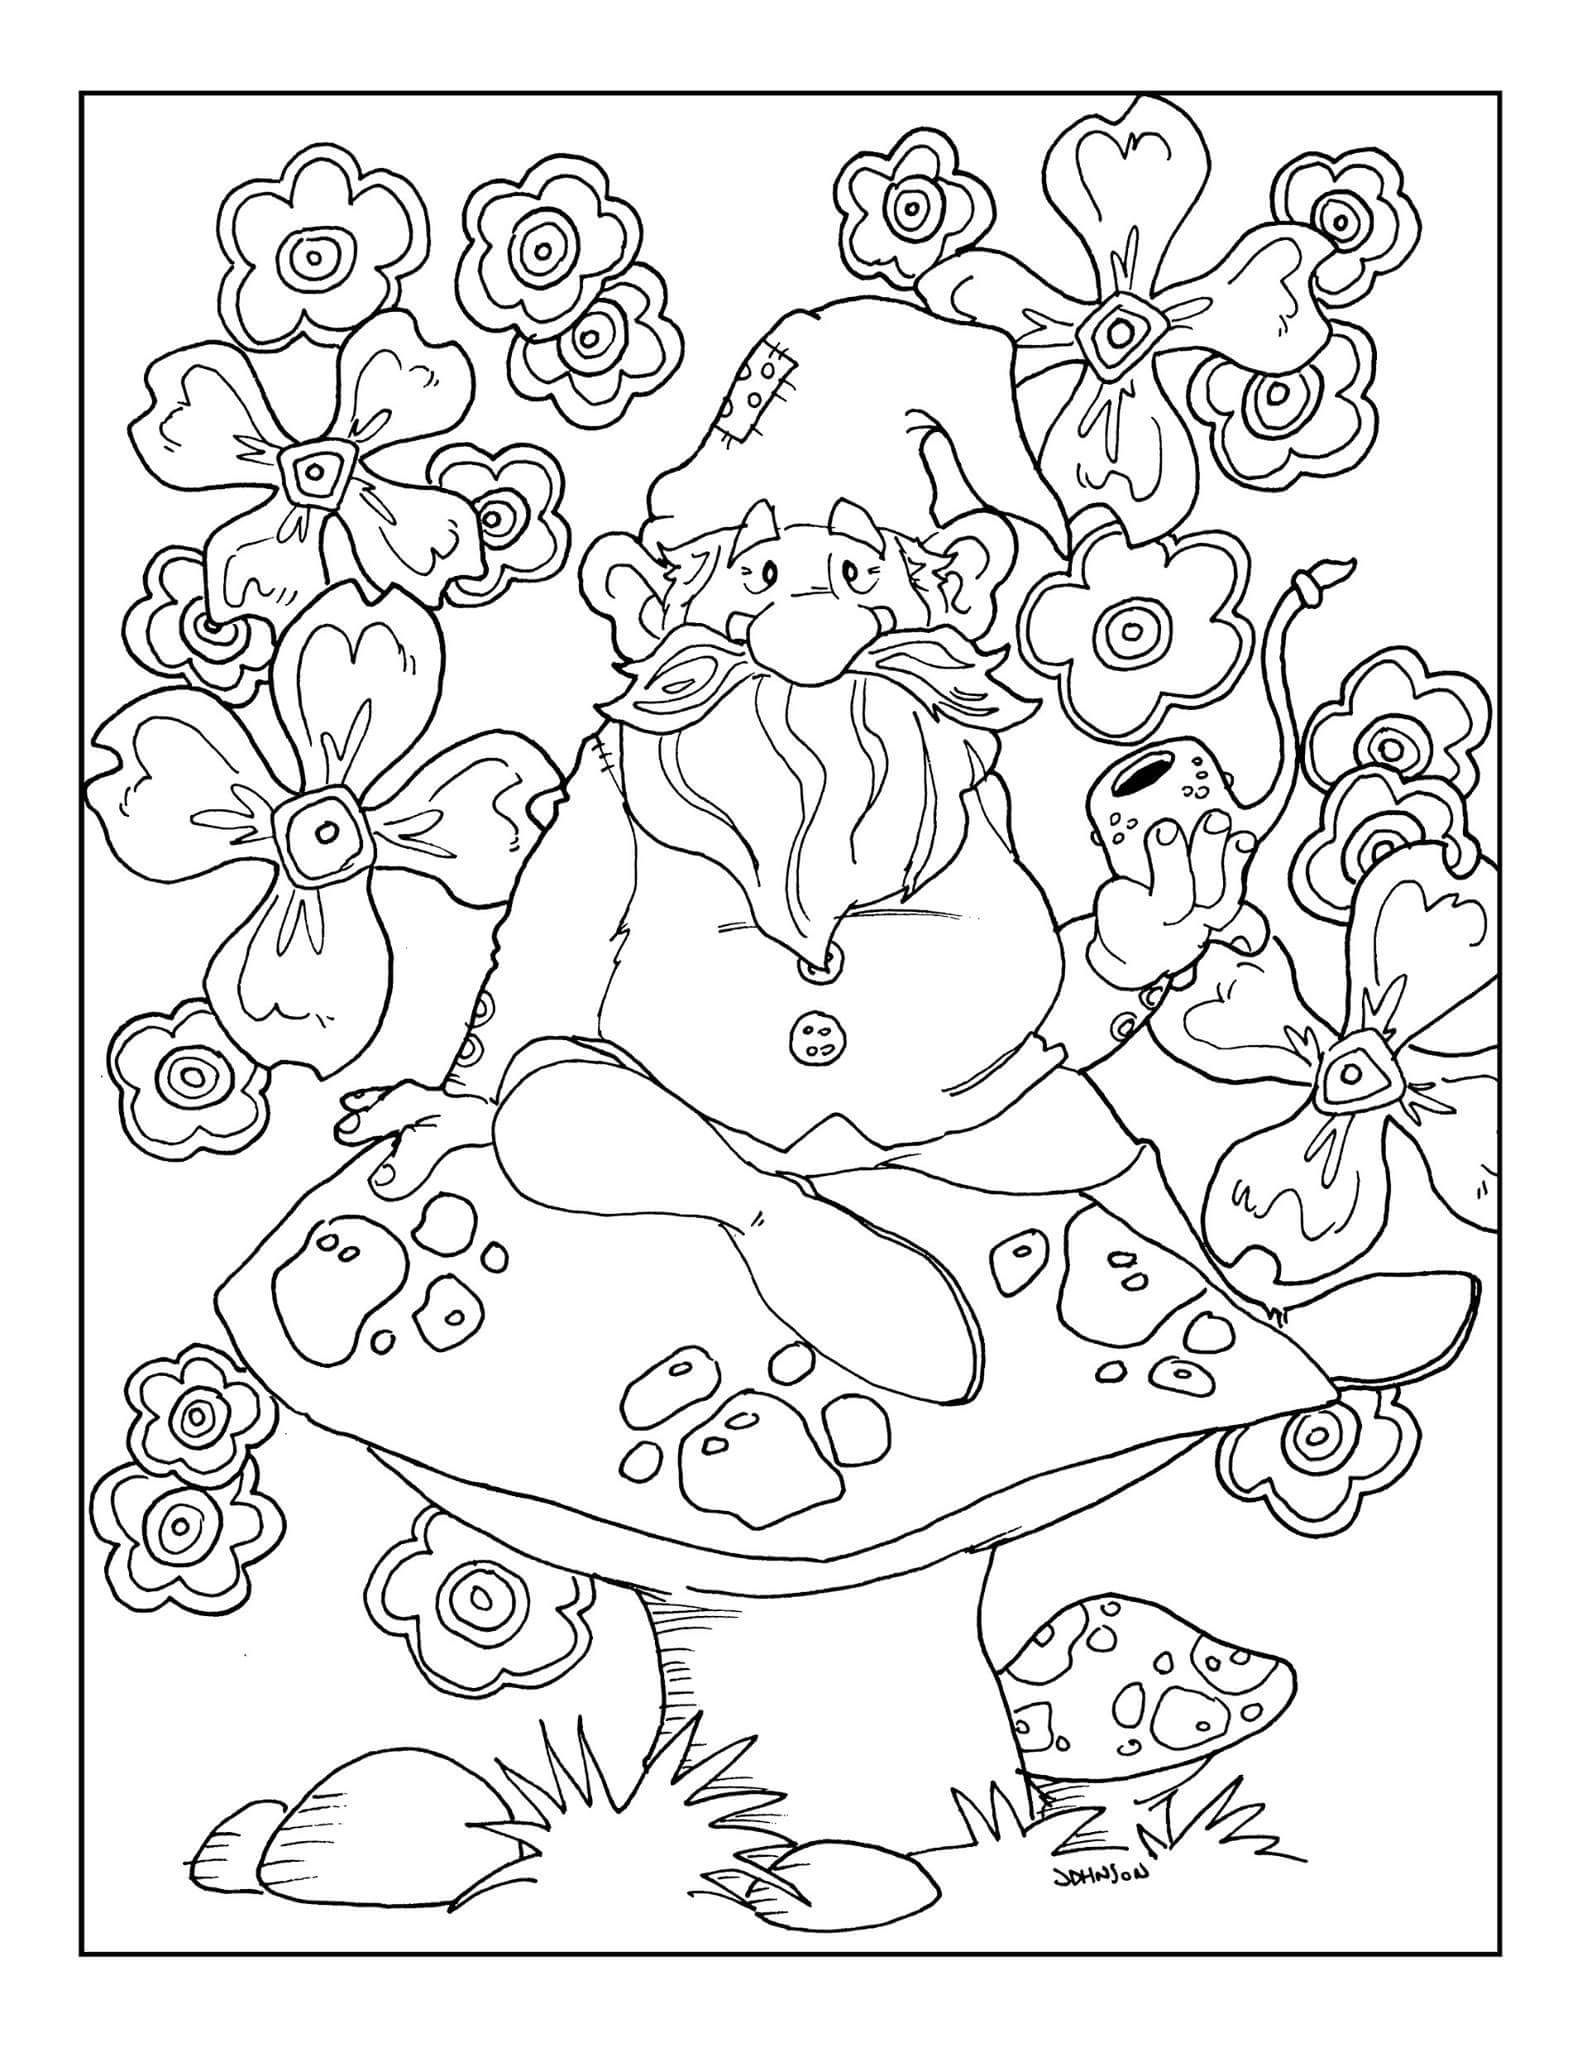 Pin by katmoon on Hippie love and peace Garden coloring